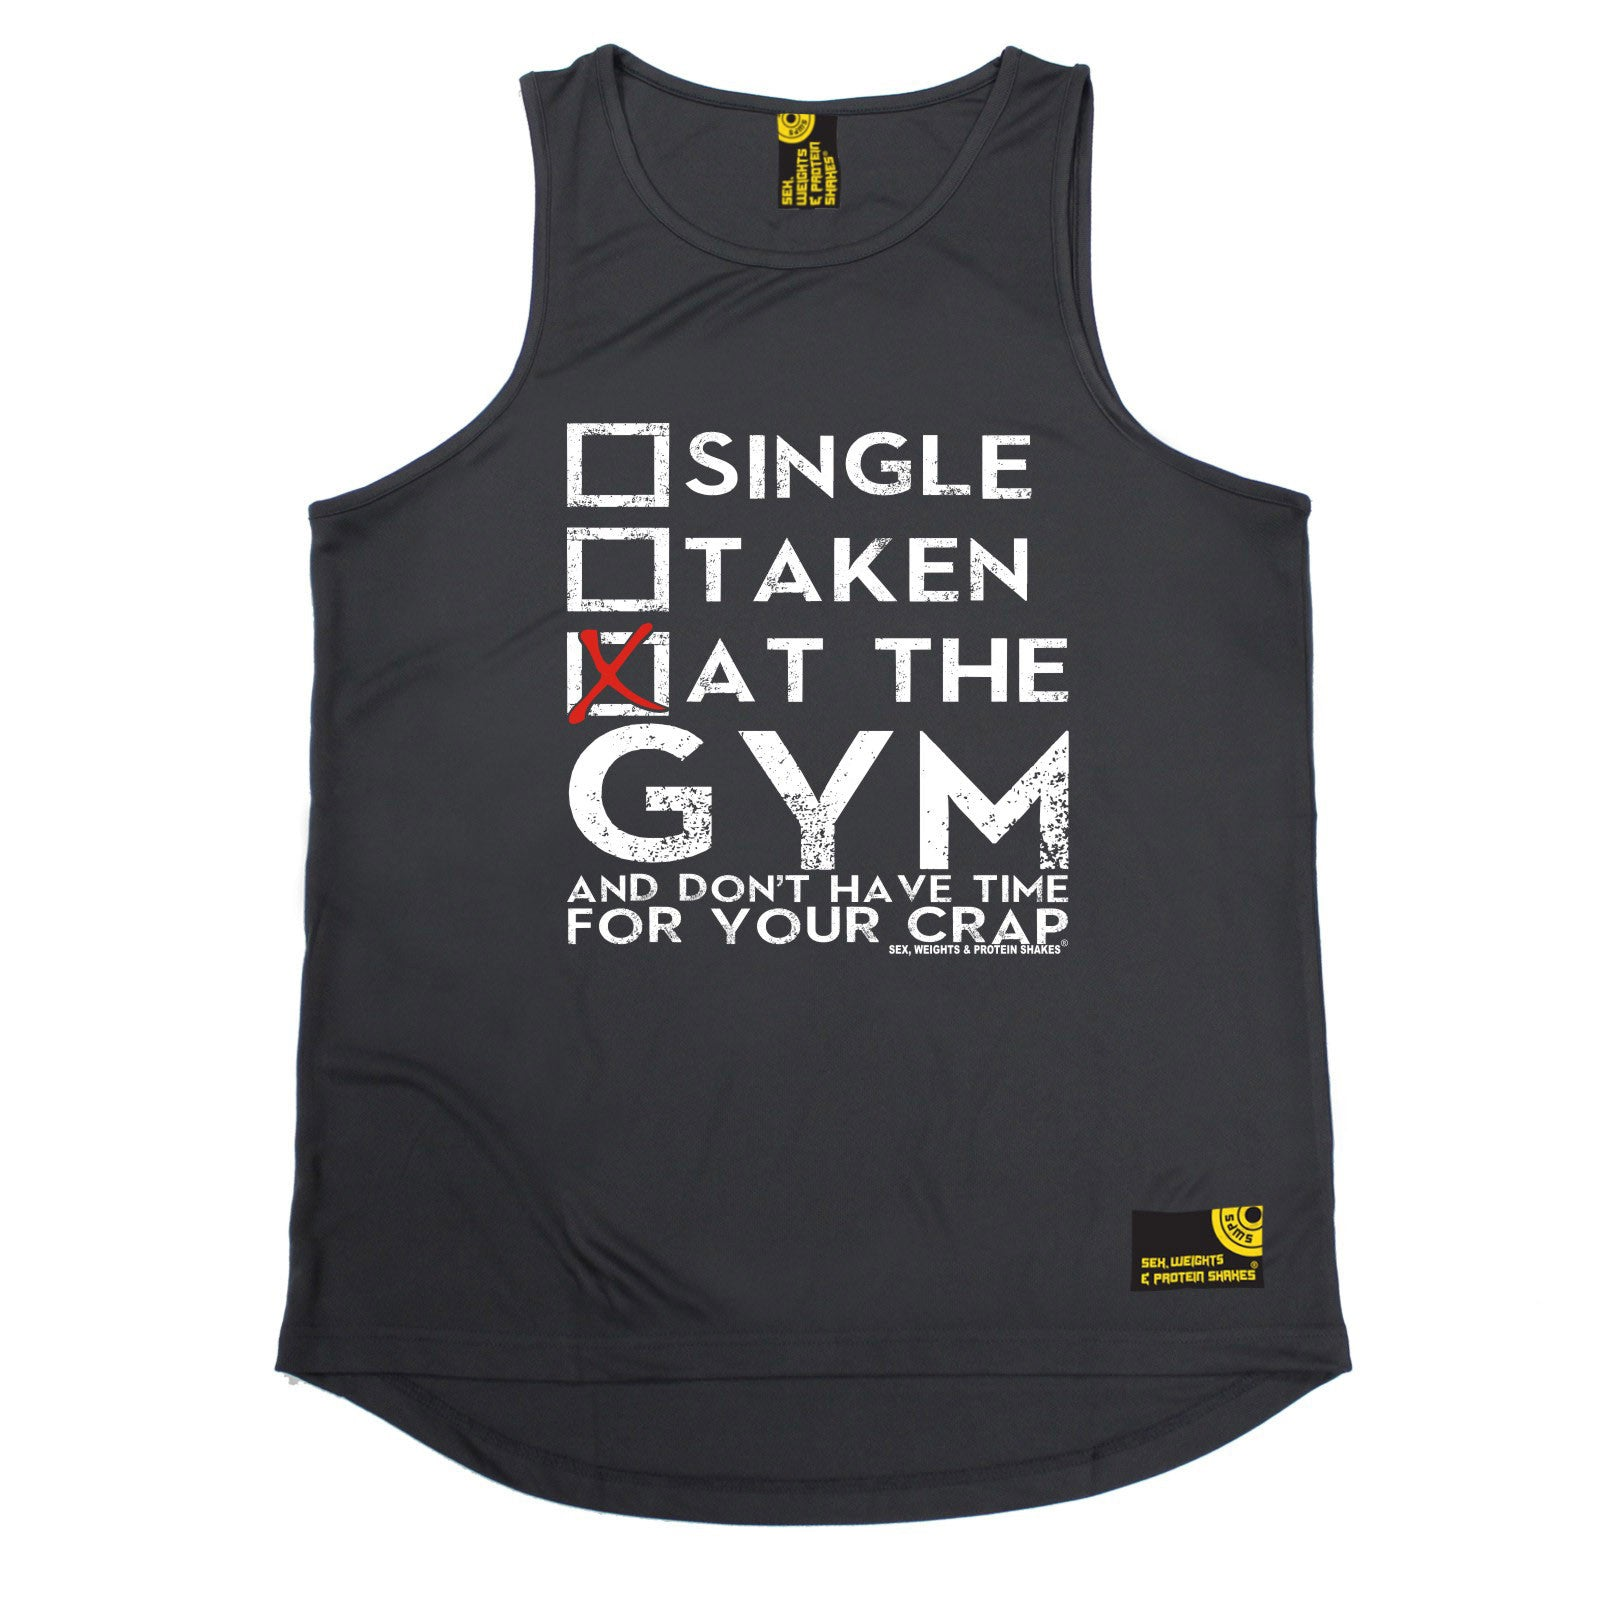 d15d3701f8 Single Taken At The Gym ... Your Crap Performance Training Cool Vest - Sex  Weights and Protein Shakes Ⓡ